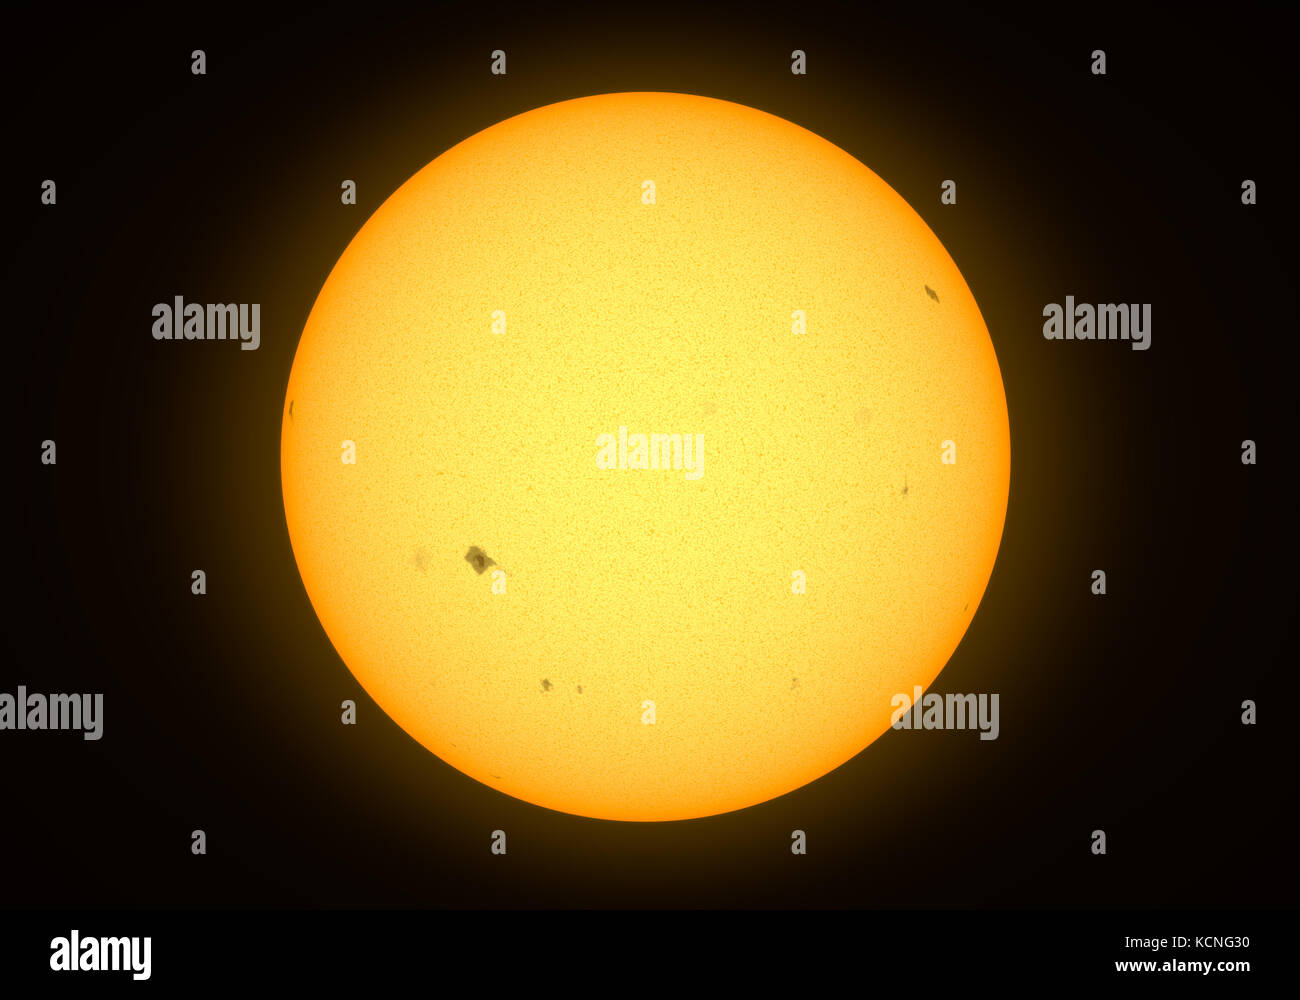 Yellow star with sunspots - Stock Image